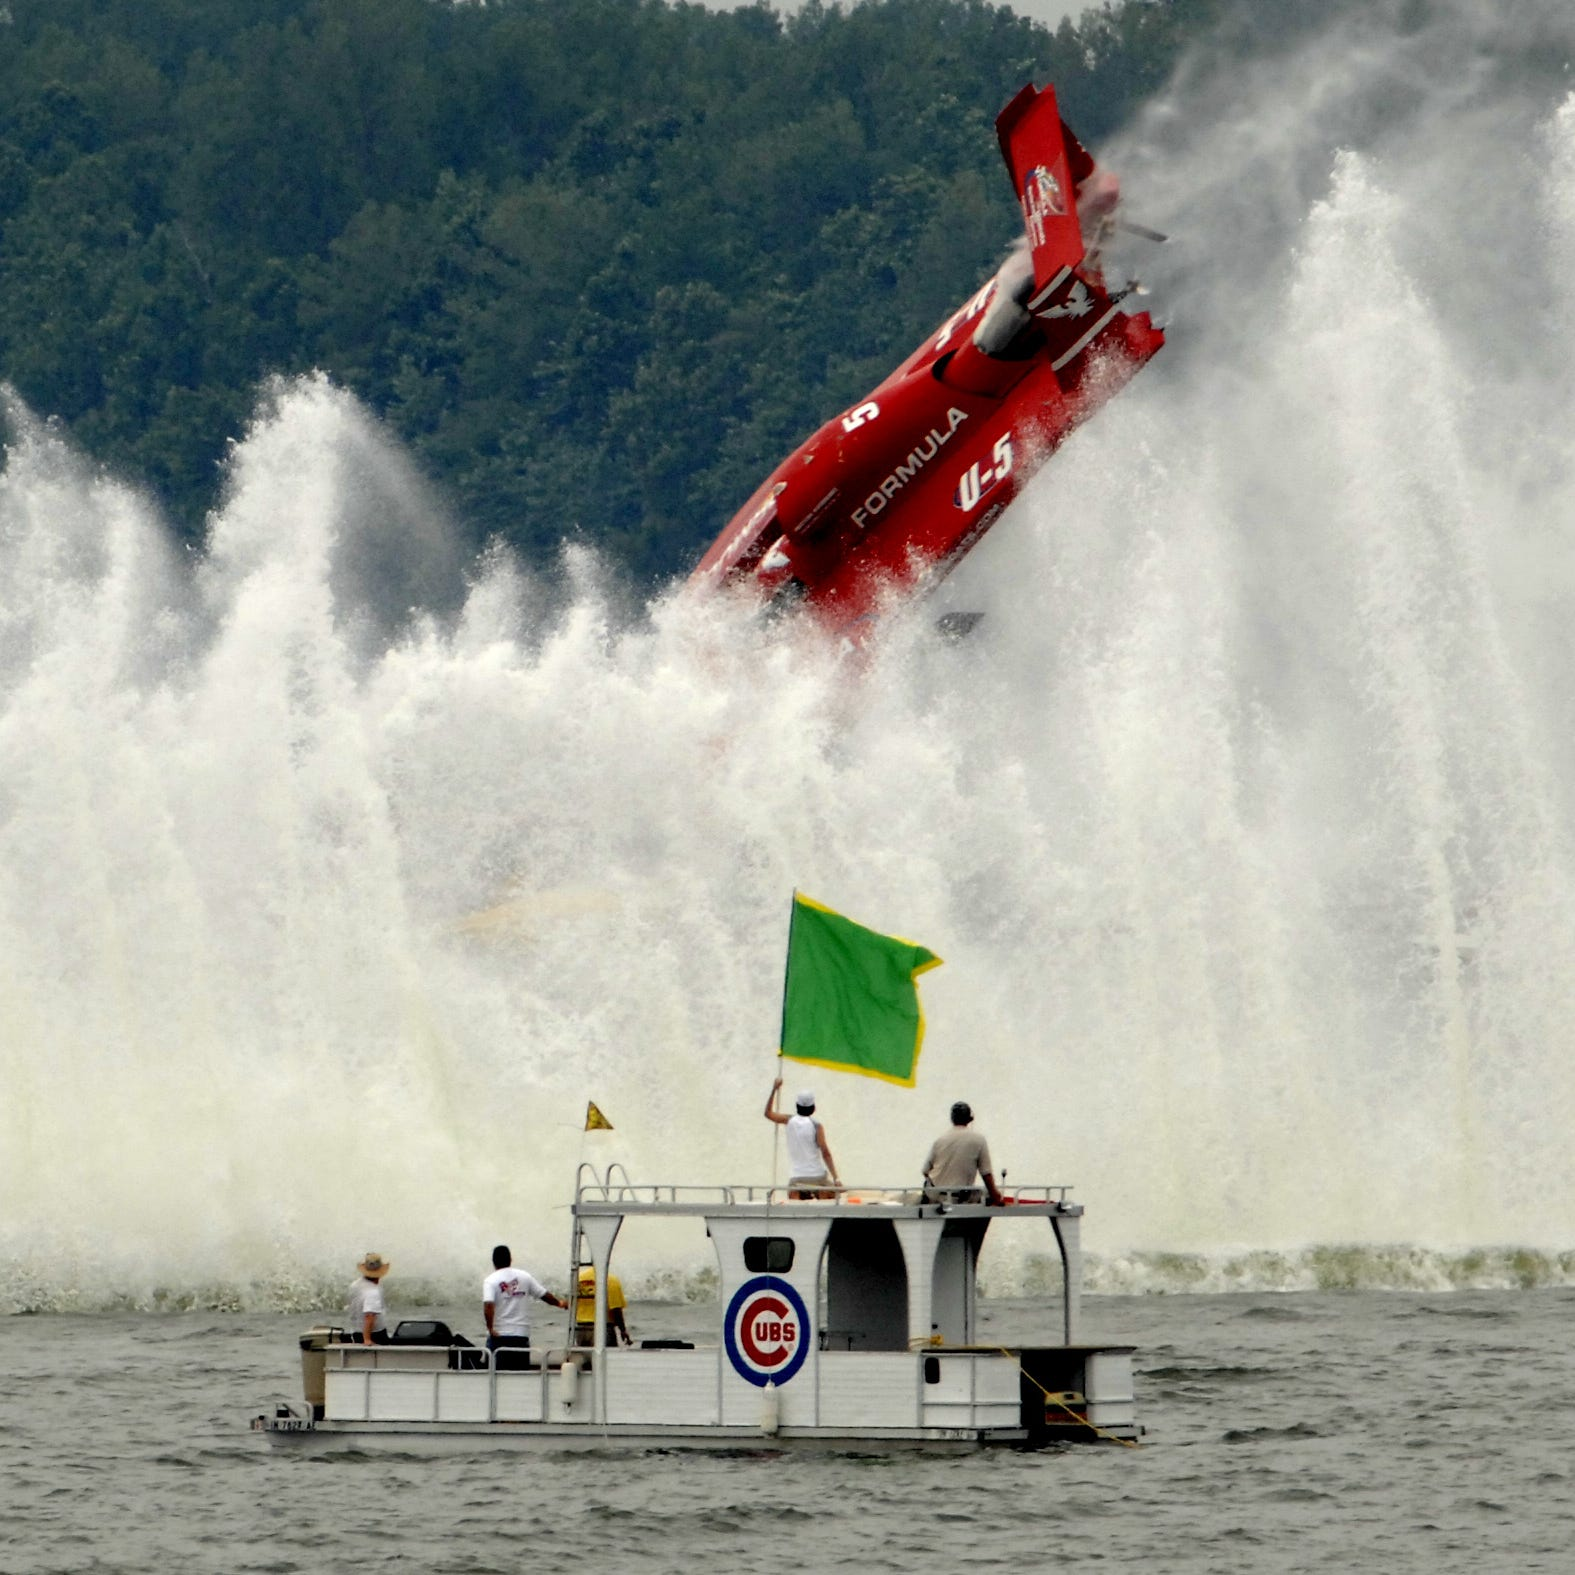 HydroFest race director Lientz stunned that this year's event is canceled | Engelhardt